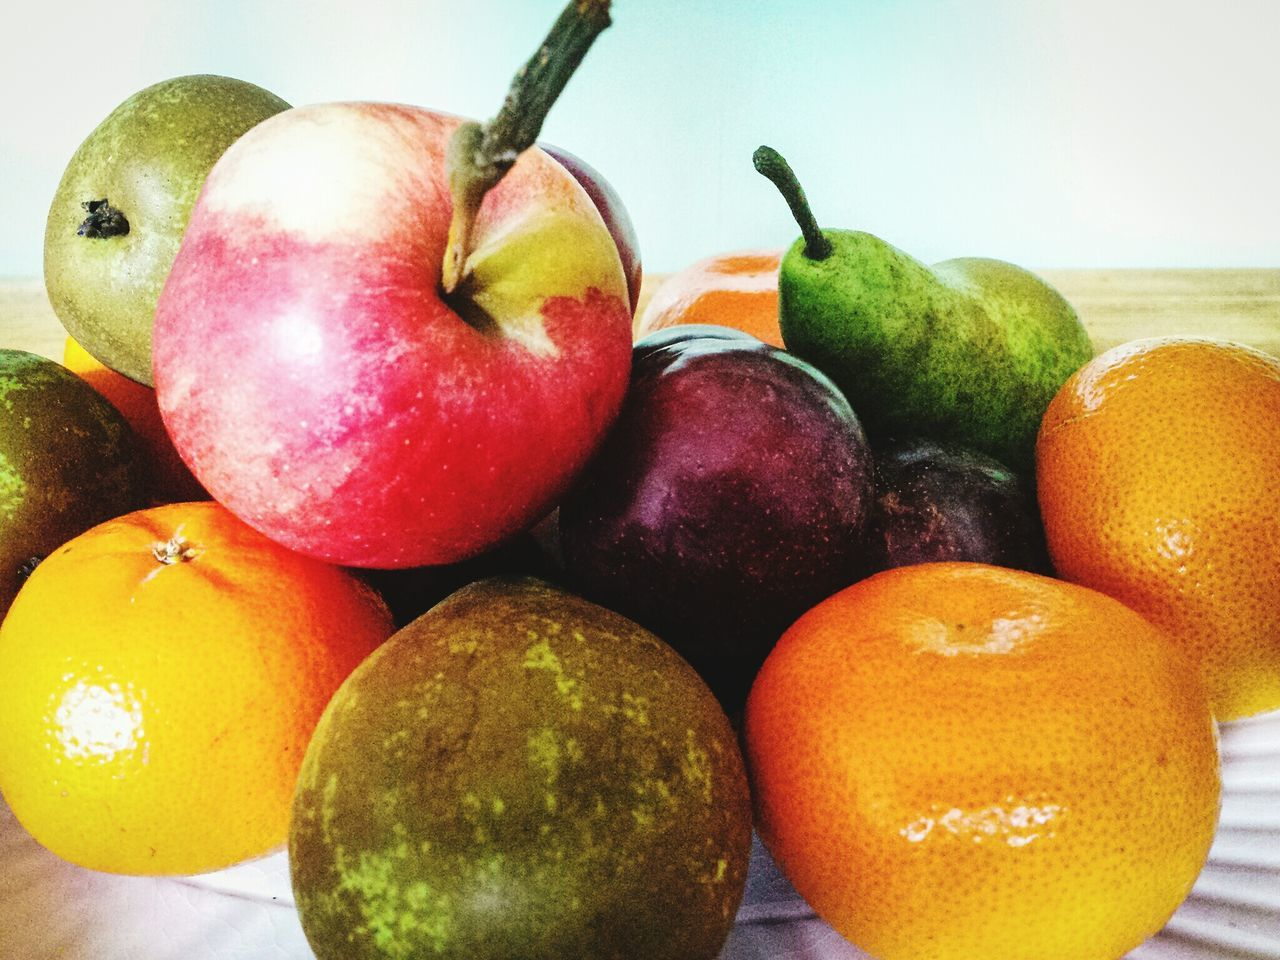 fruit, food and drink, healthy eating, food, apple - fruit, still life, freshness, apple, no people, close-up, pear, indoors, day